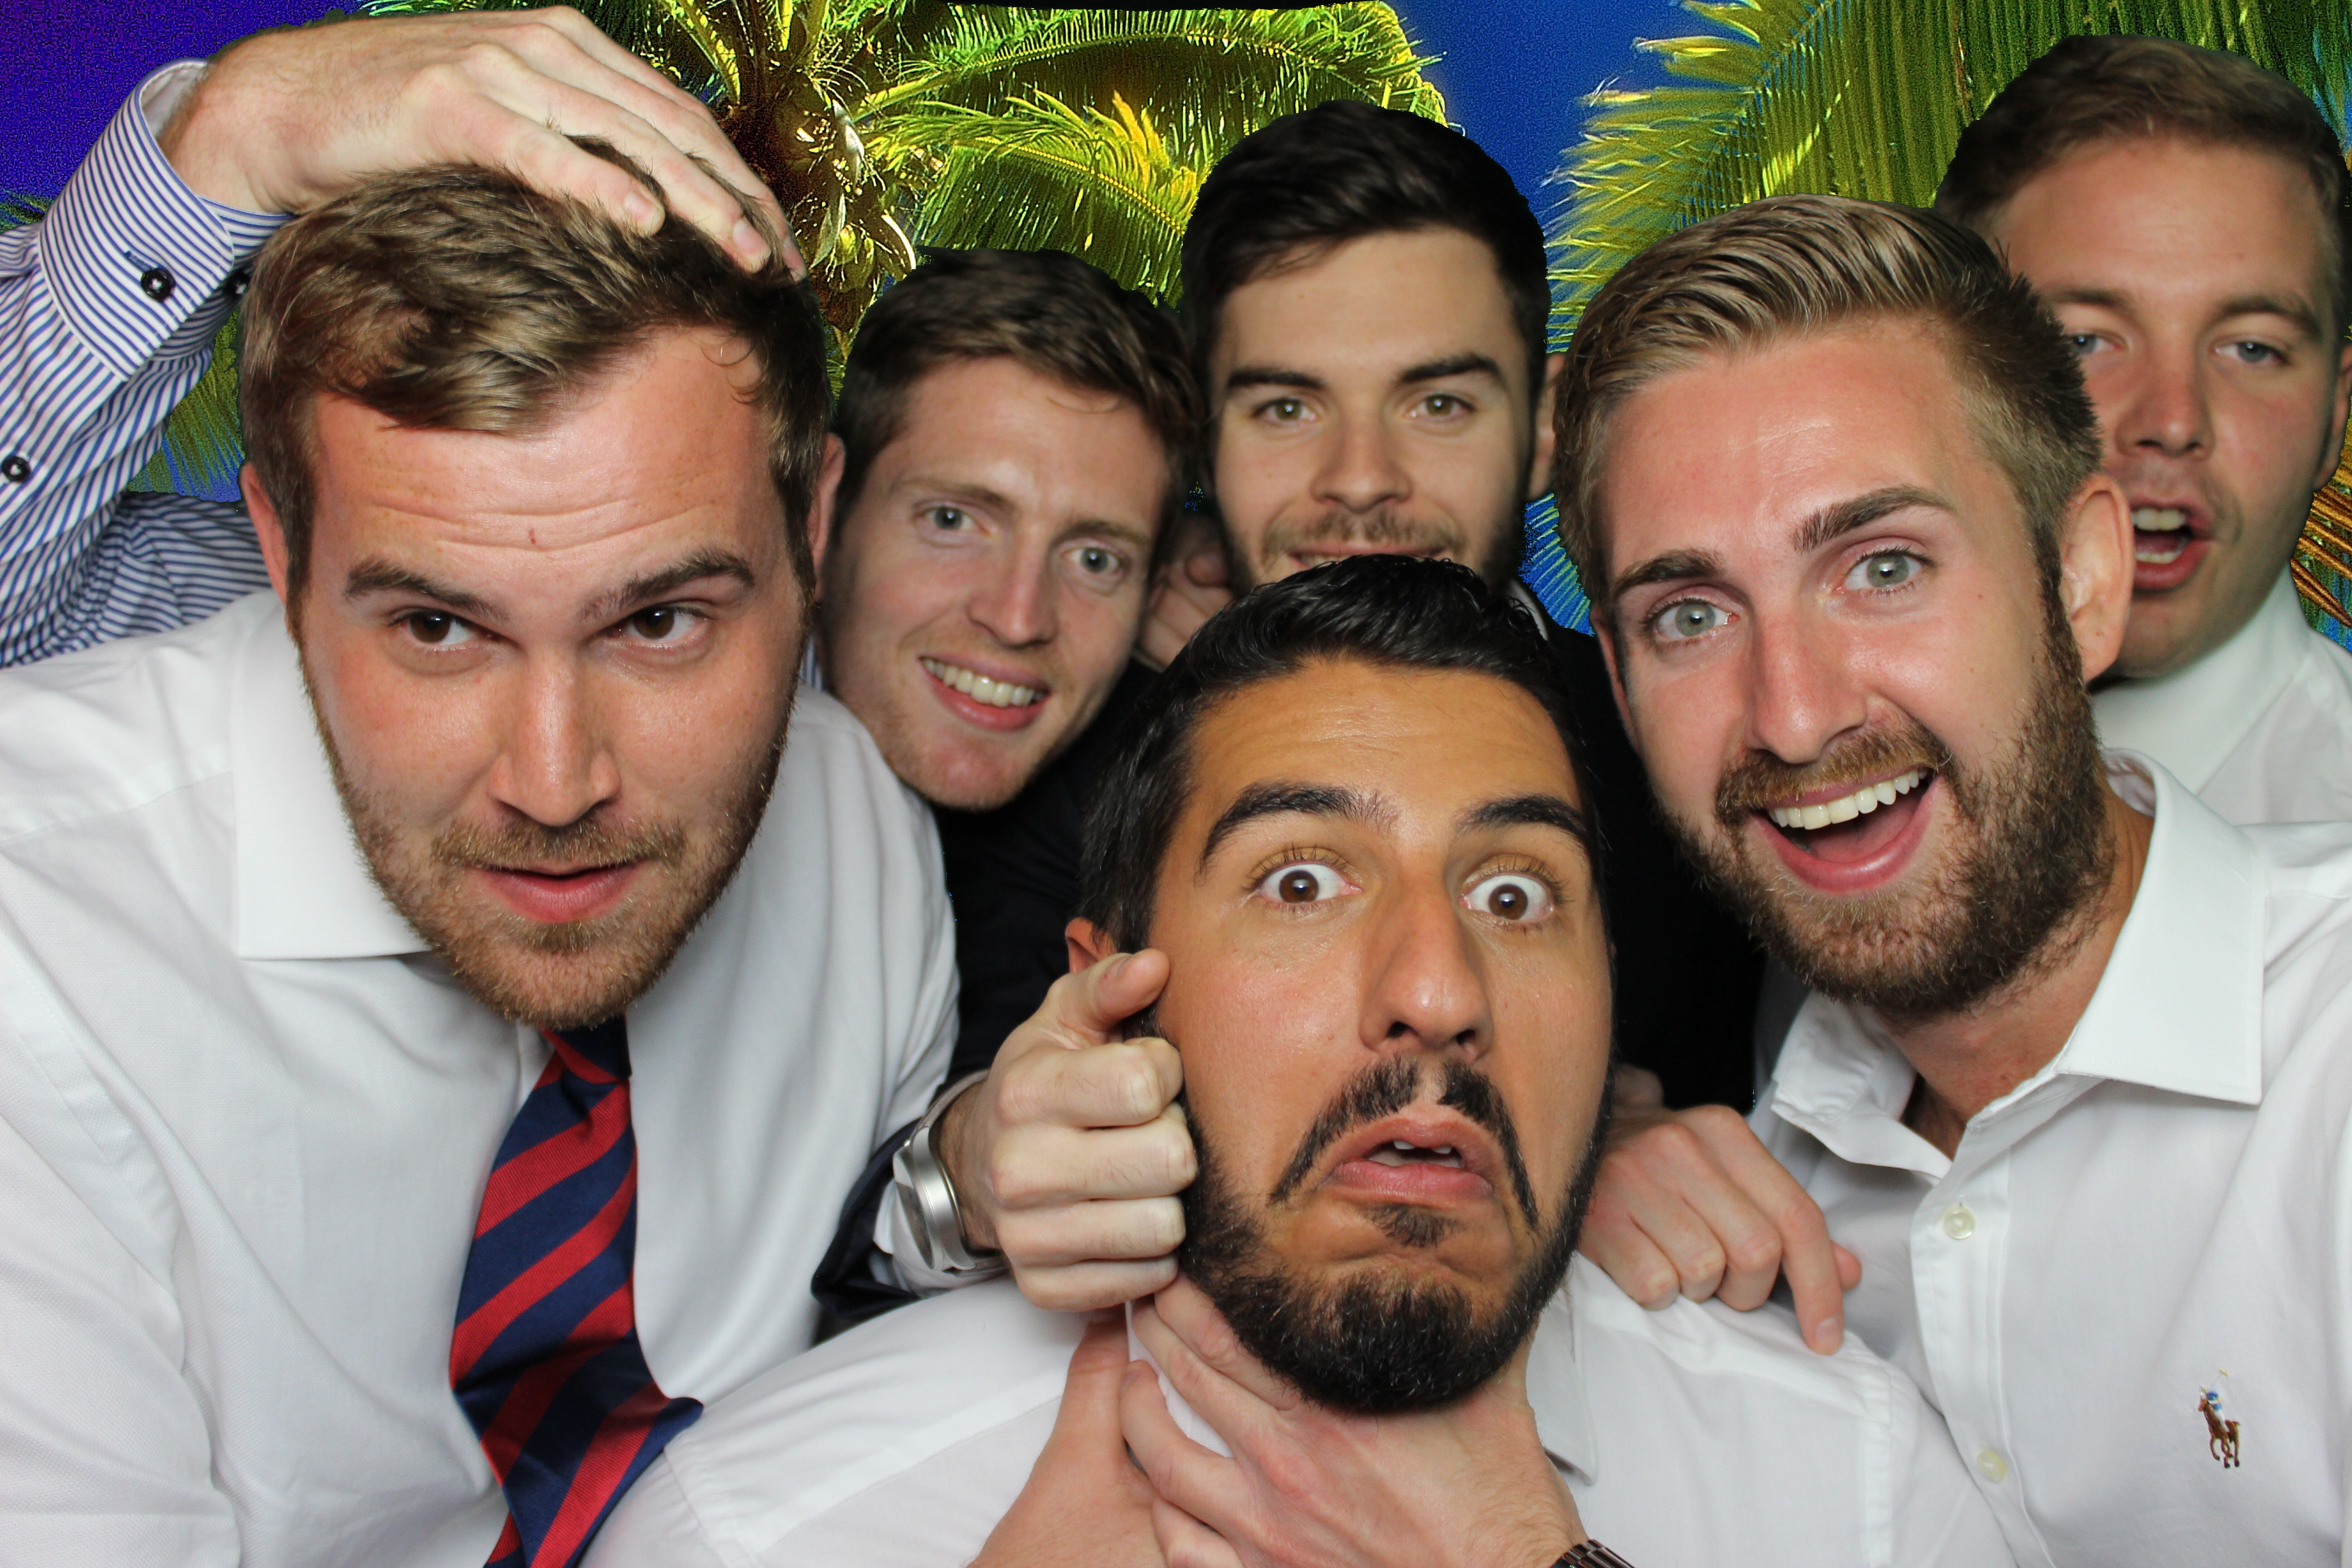 City-Touch-Cop-Photo-Booth-Hire-6.jpg